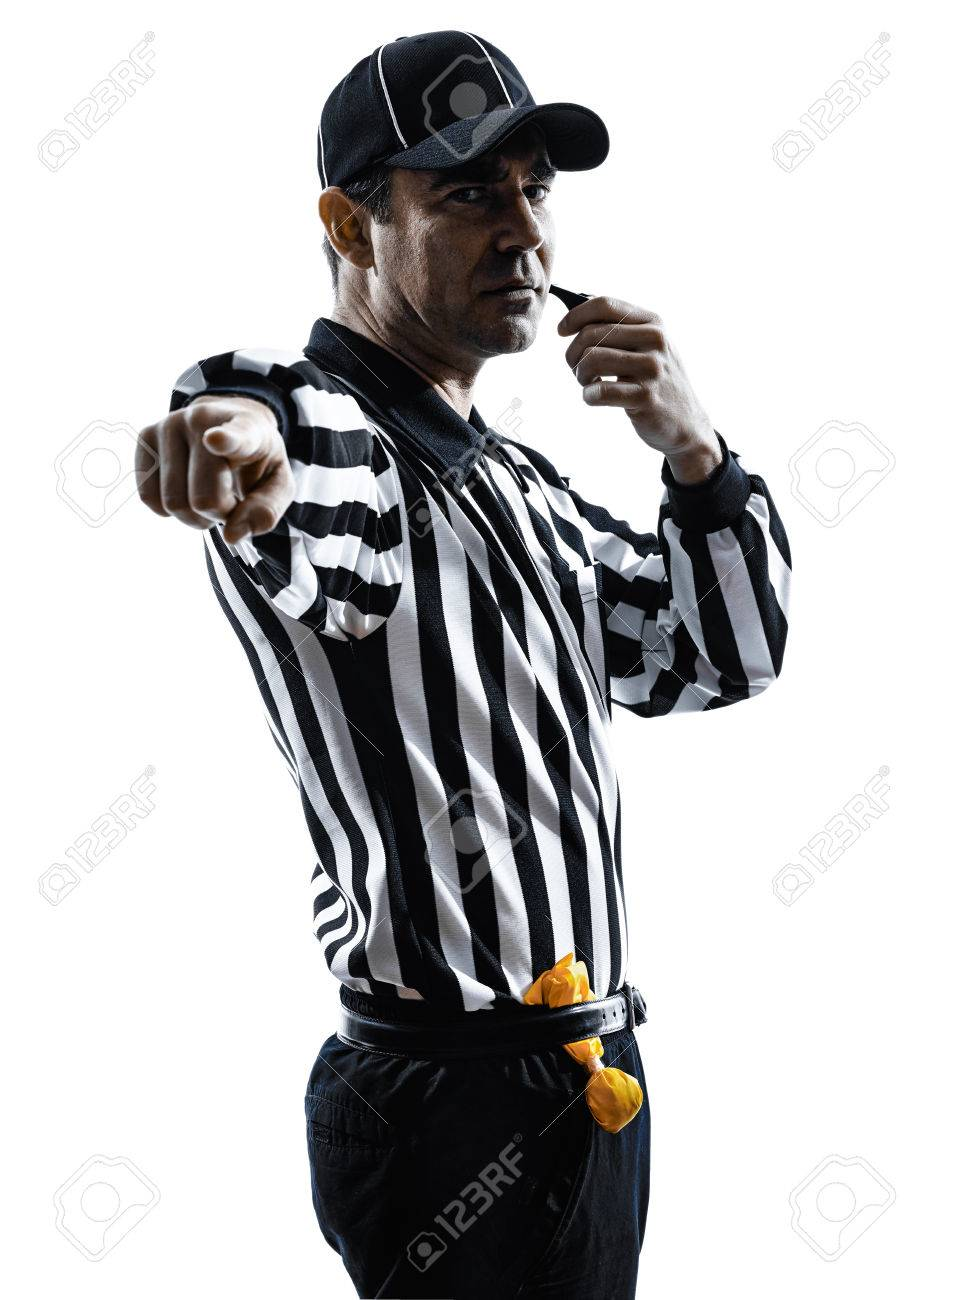 american football referee whistle whistling in silhouettes on white background - 28055256